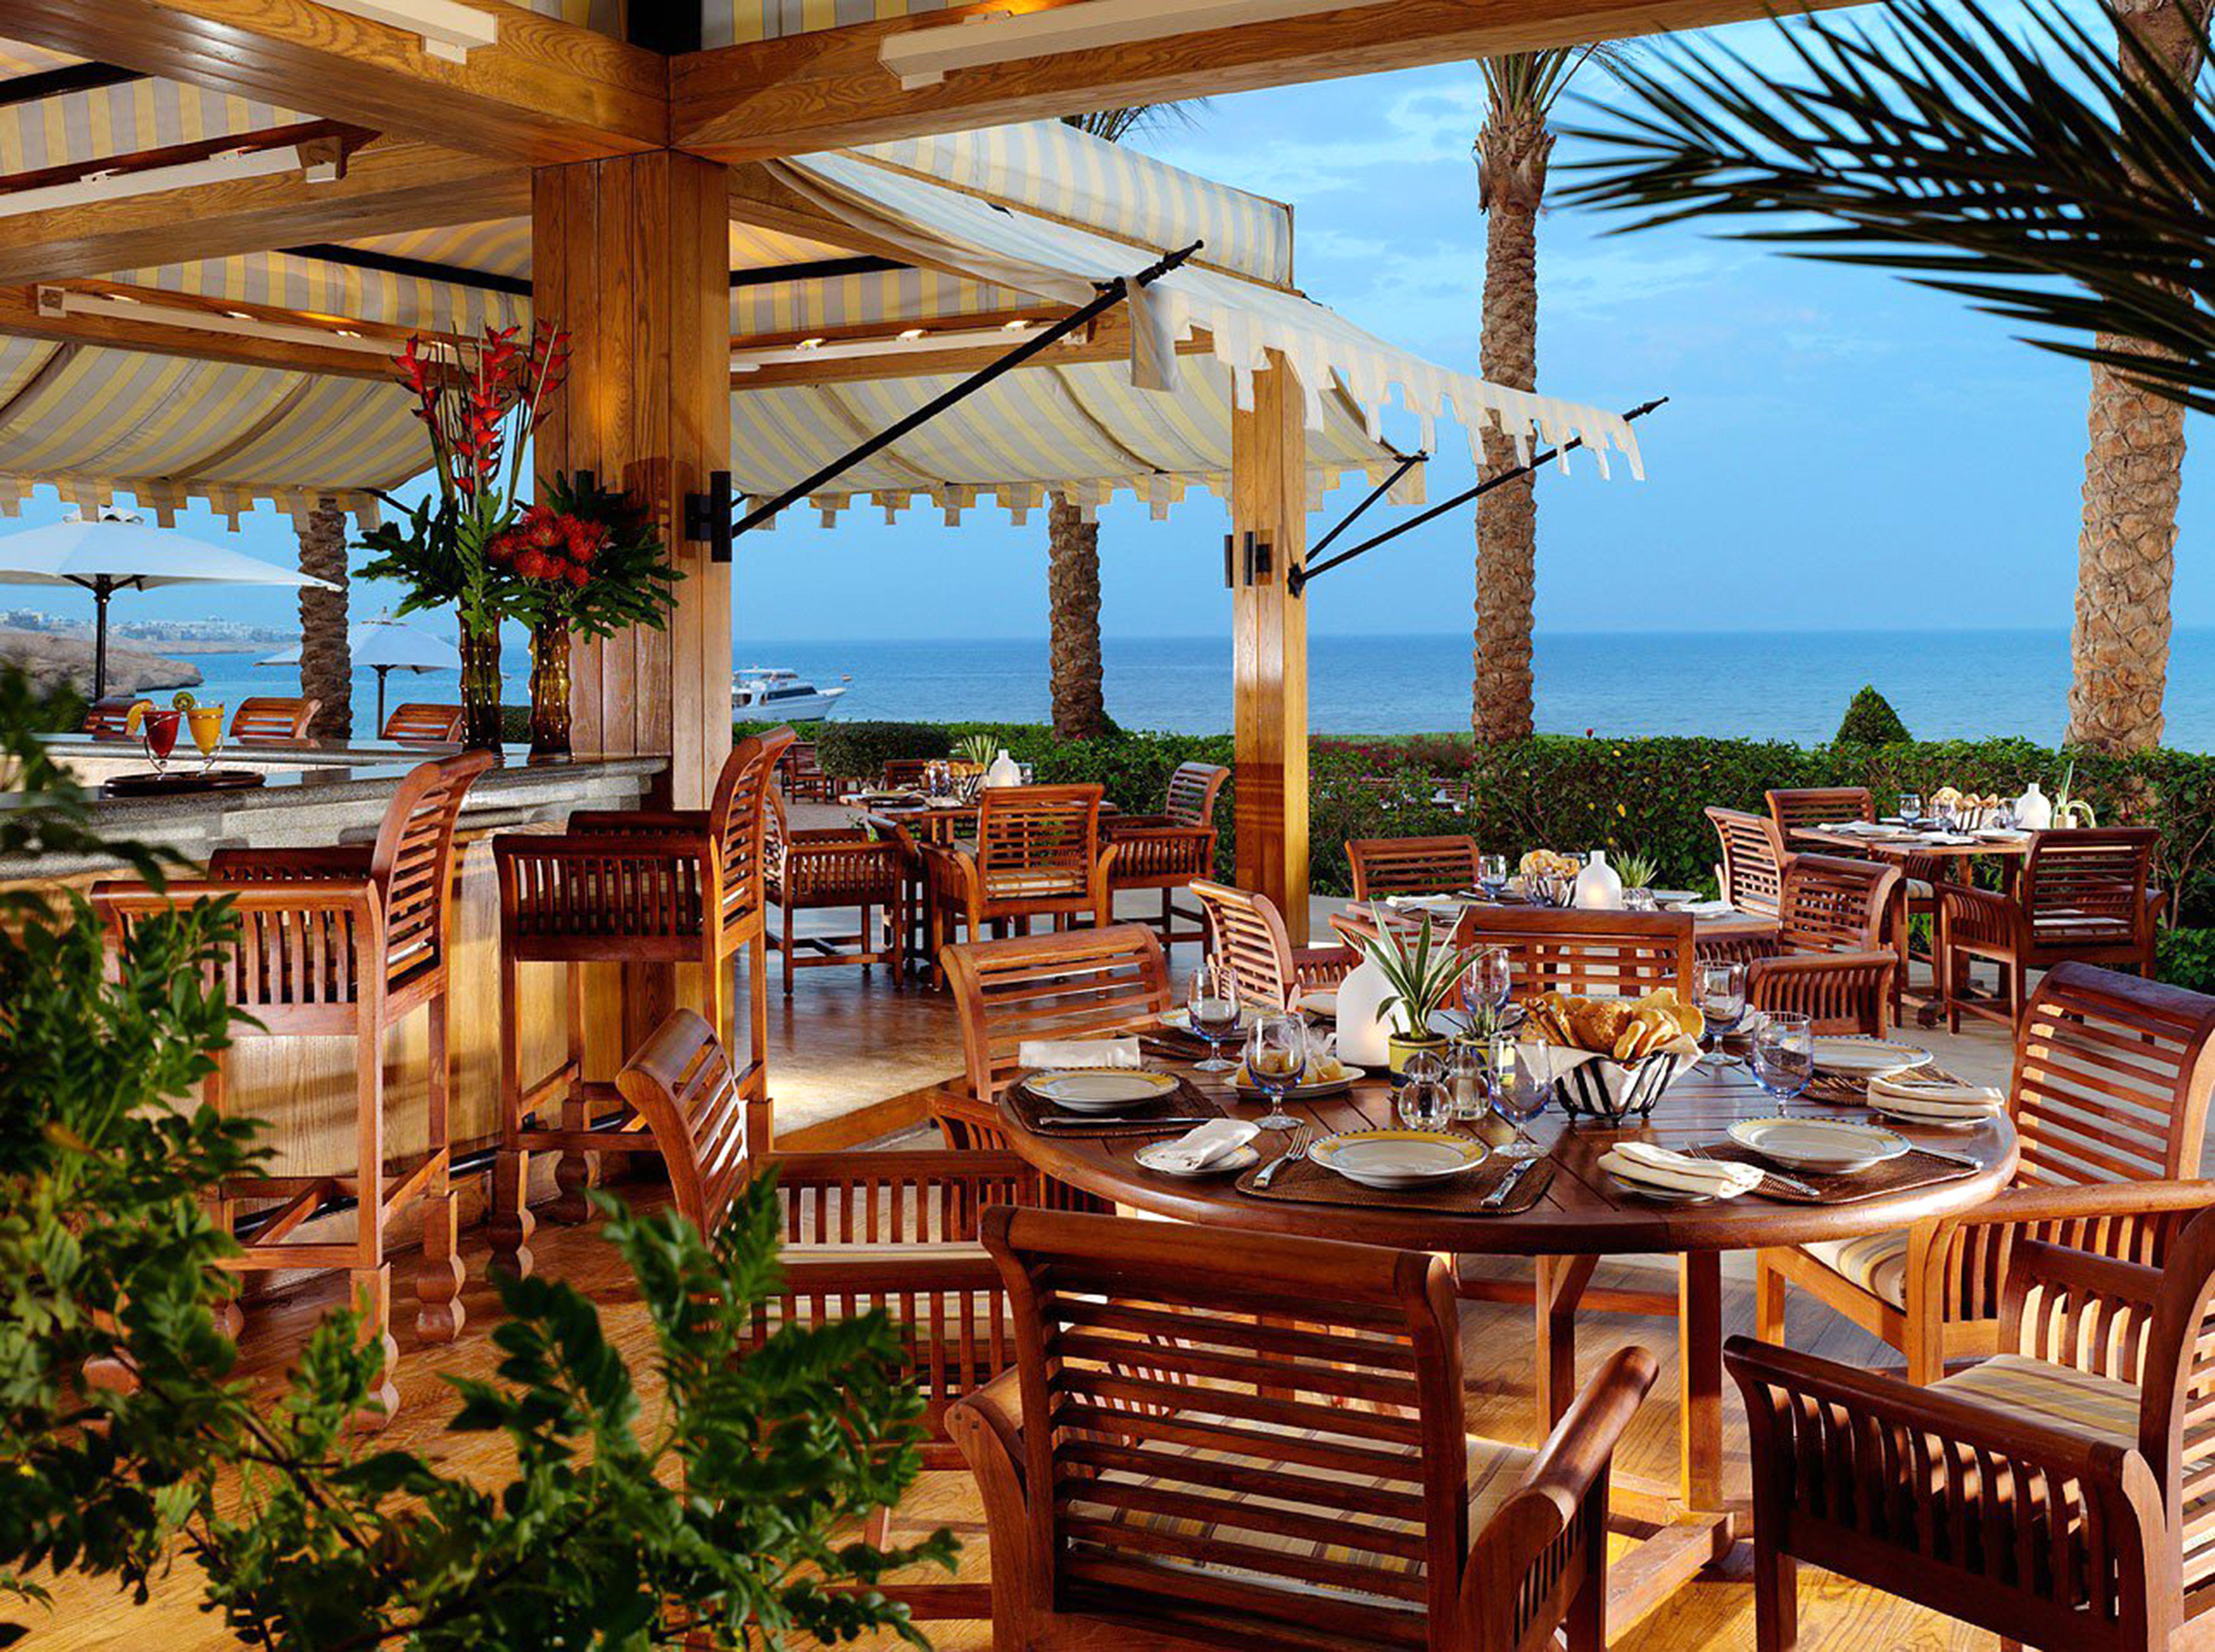 Dining Drink Eat Patio Terrace Waterfront chair property Resort home Villa wooden cottage restaurant eco hotel outdoor structure caribbean set